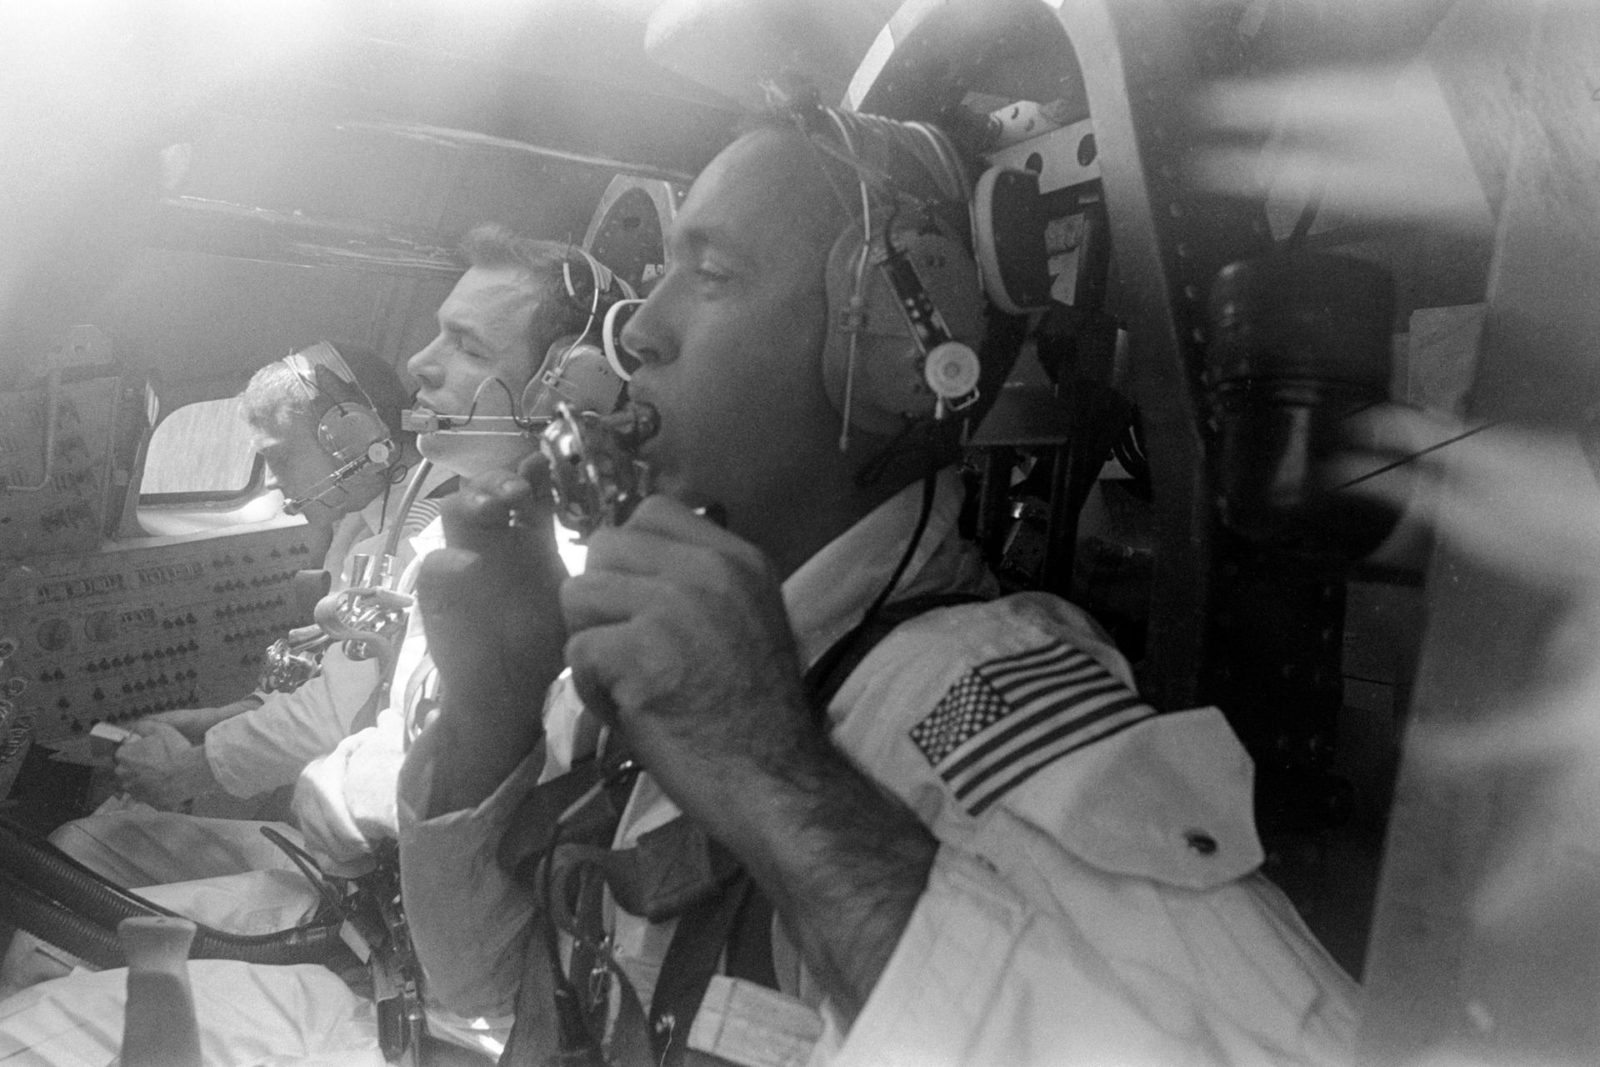 Apollo 9 prime crew inside Apollo command module boilerplate during training